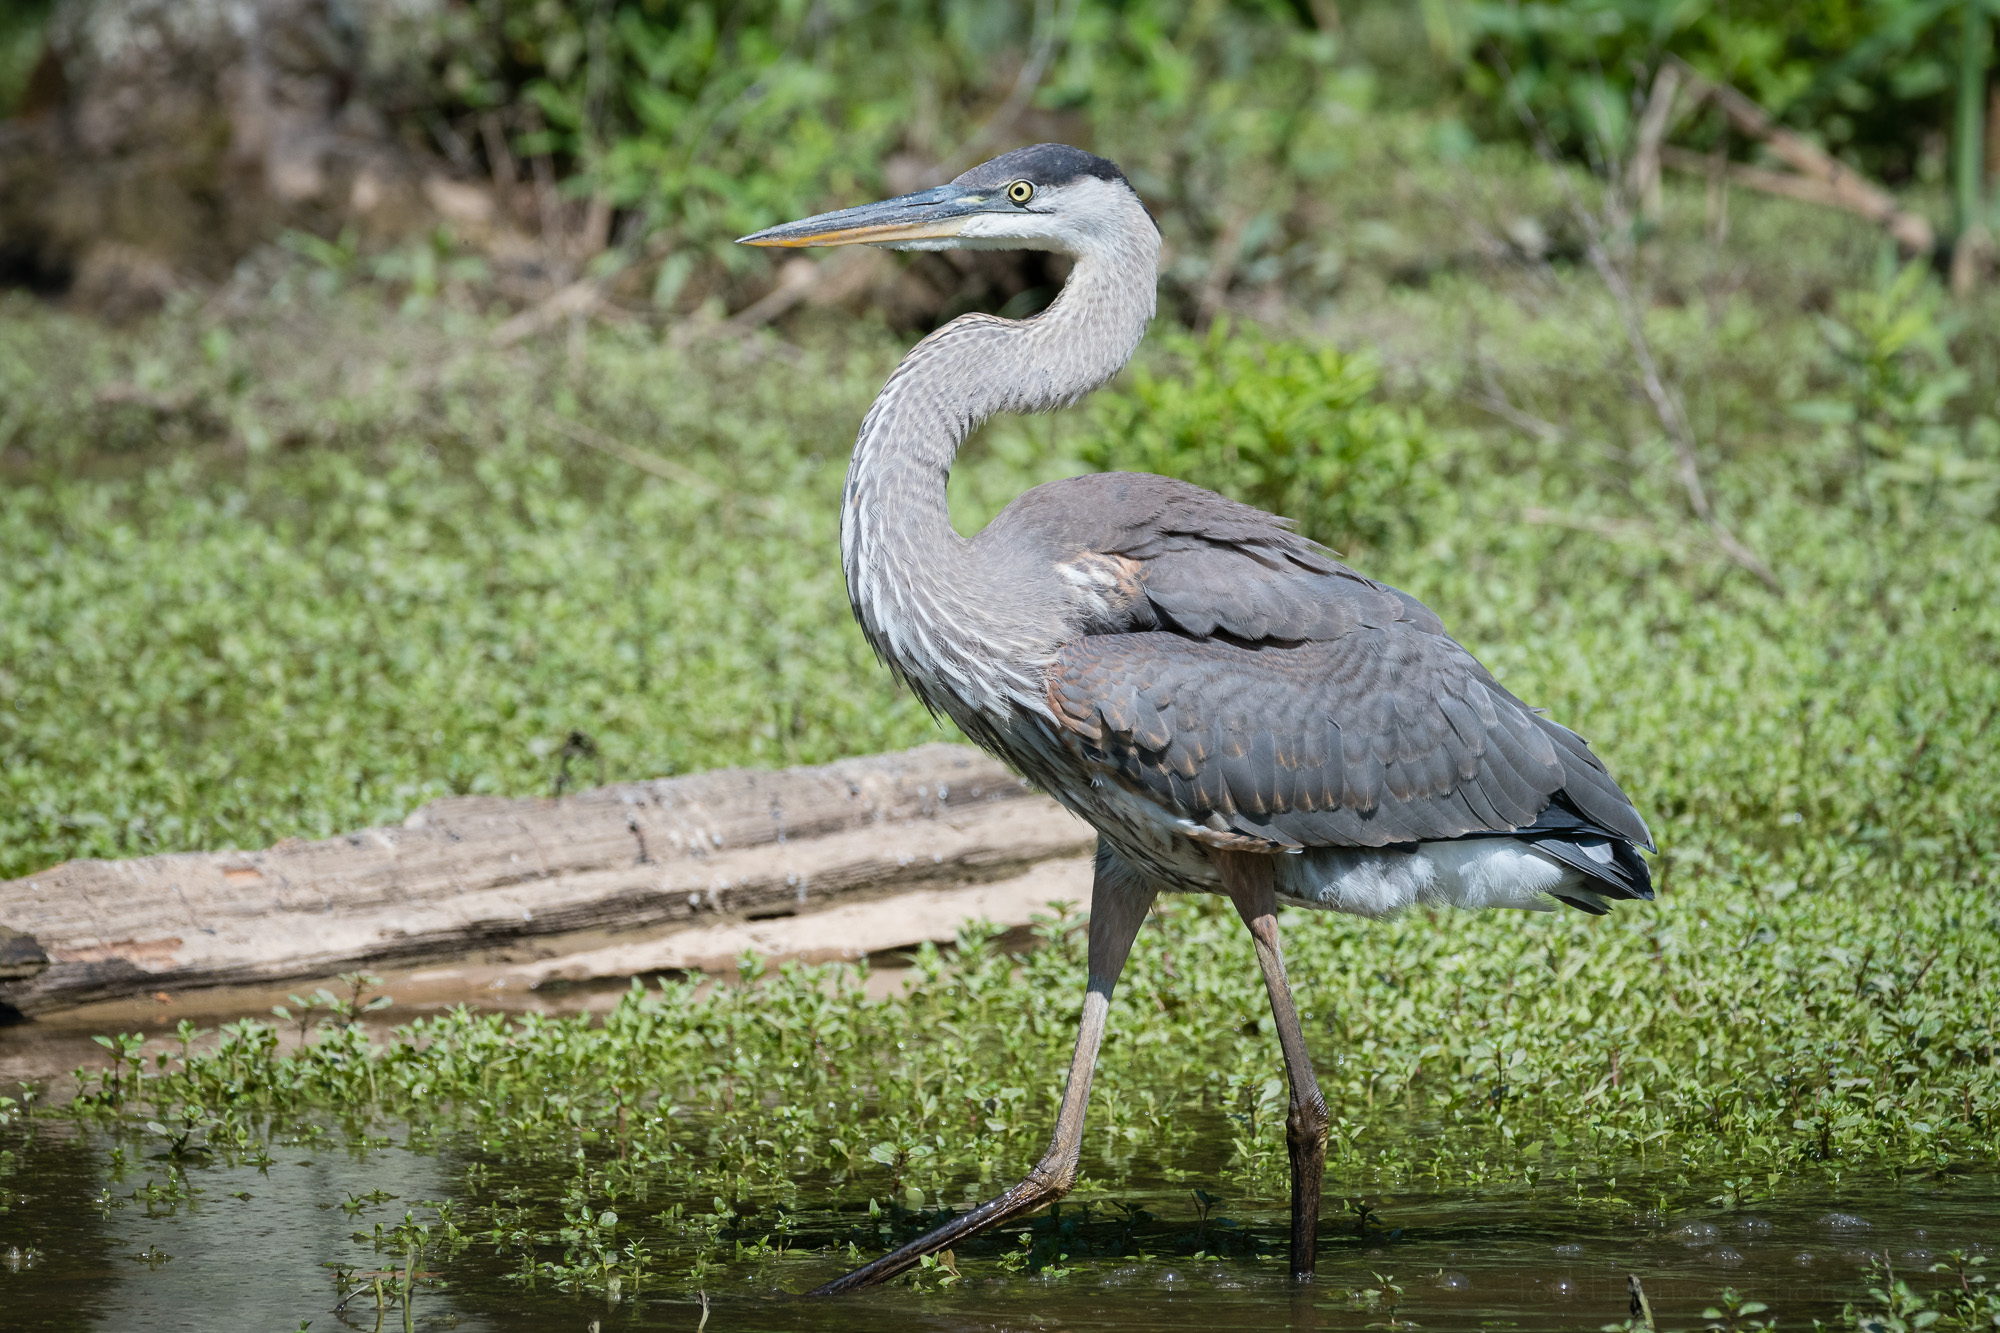 Satisfied with its catch the Great Blue Heron goes back to fishing.